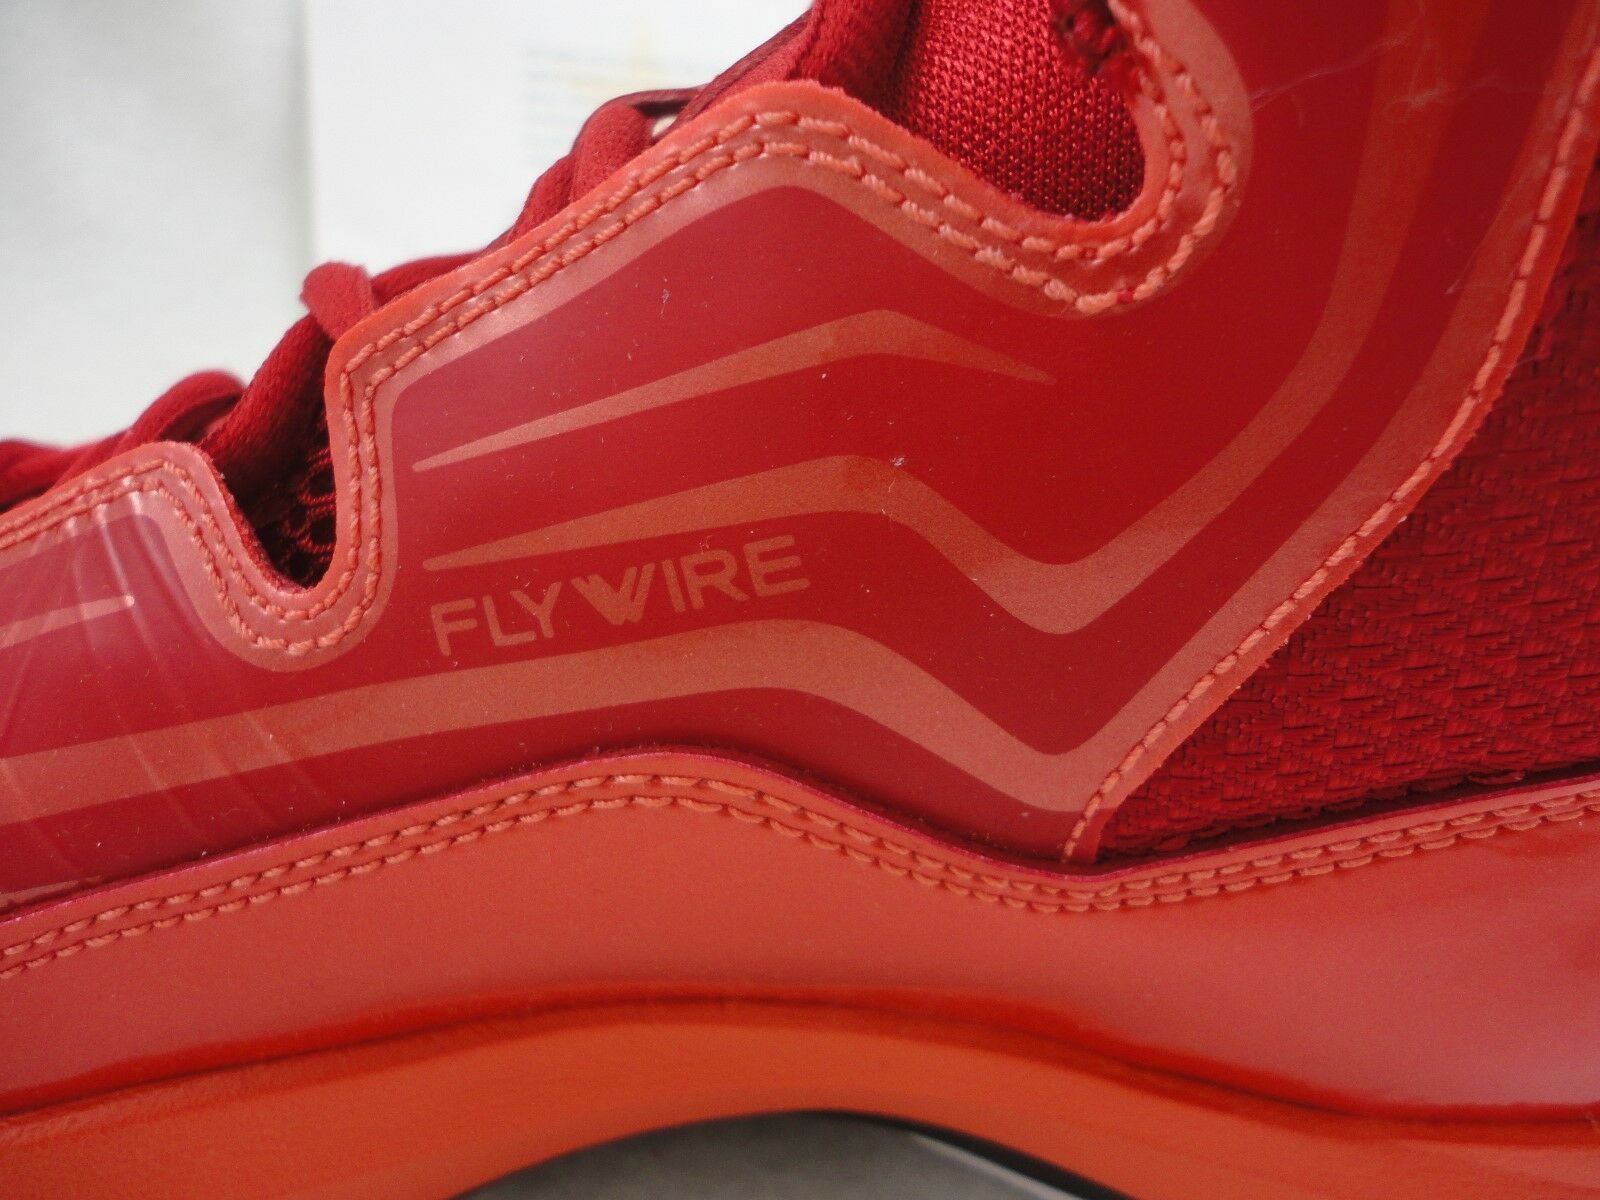 Nike Jordan Aero Mania, Size 10.5, Flywire, Light Gym Red Orange, Very Light Flywire, Weight 30a793